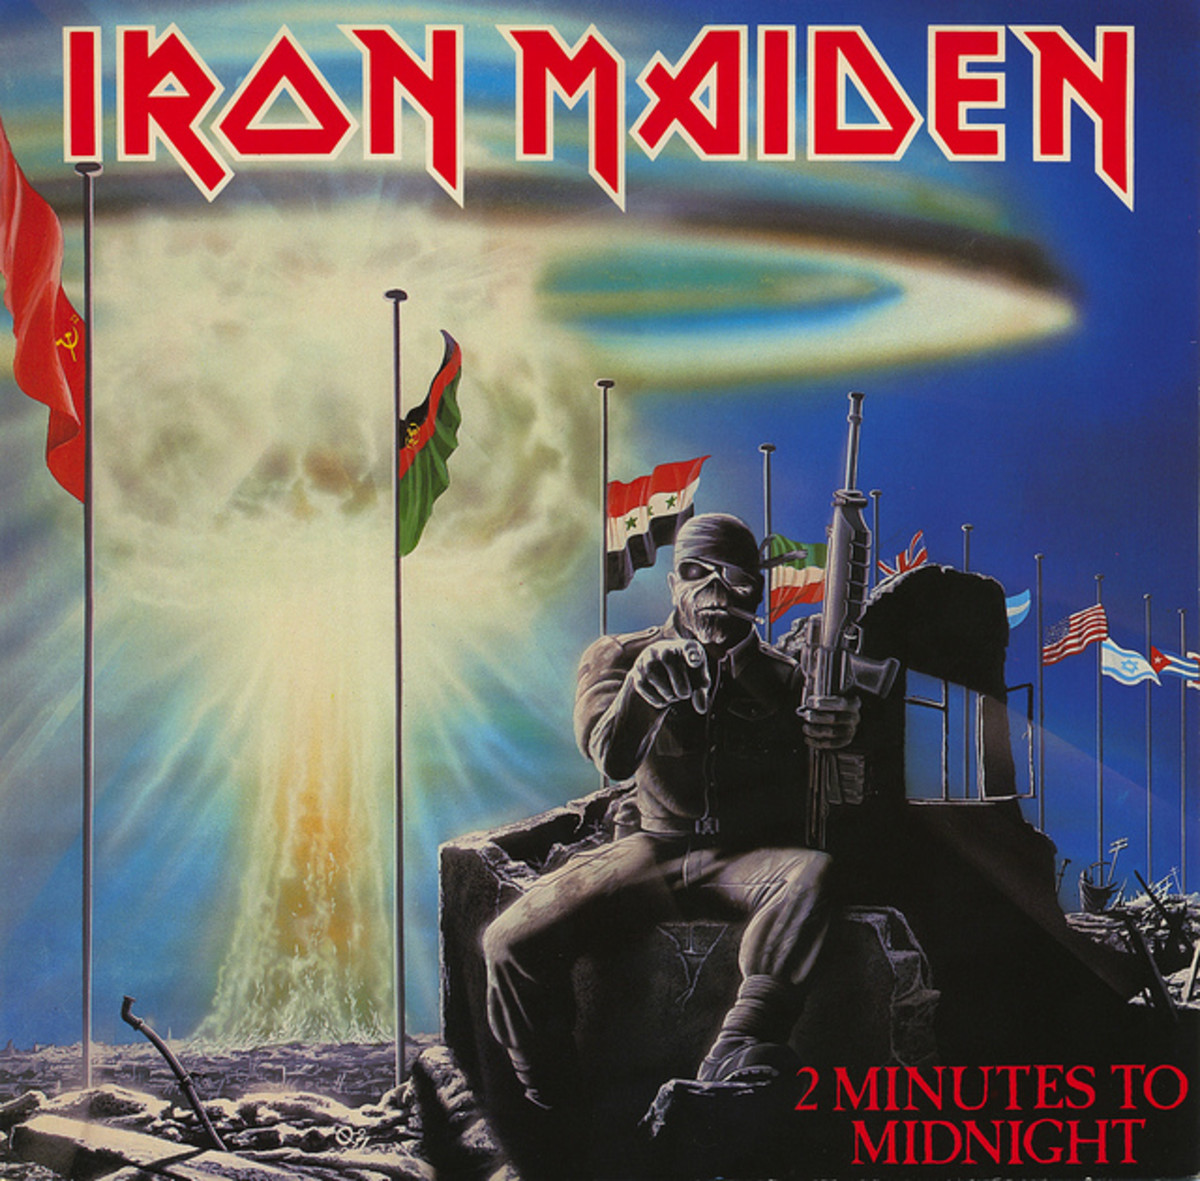 "Iron Maiden ""2 Minutes To Midnight"" EMI 12EMI 5489 12"" Vinyl Single UK Pressing (1984) Cover Art by Derek Riggs"